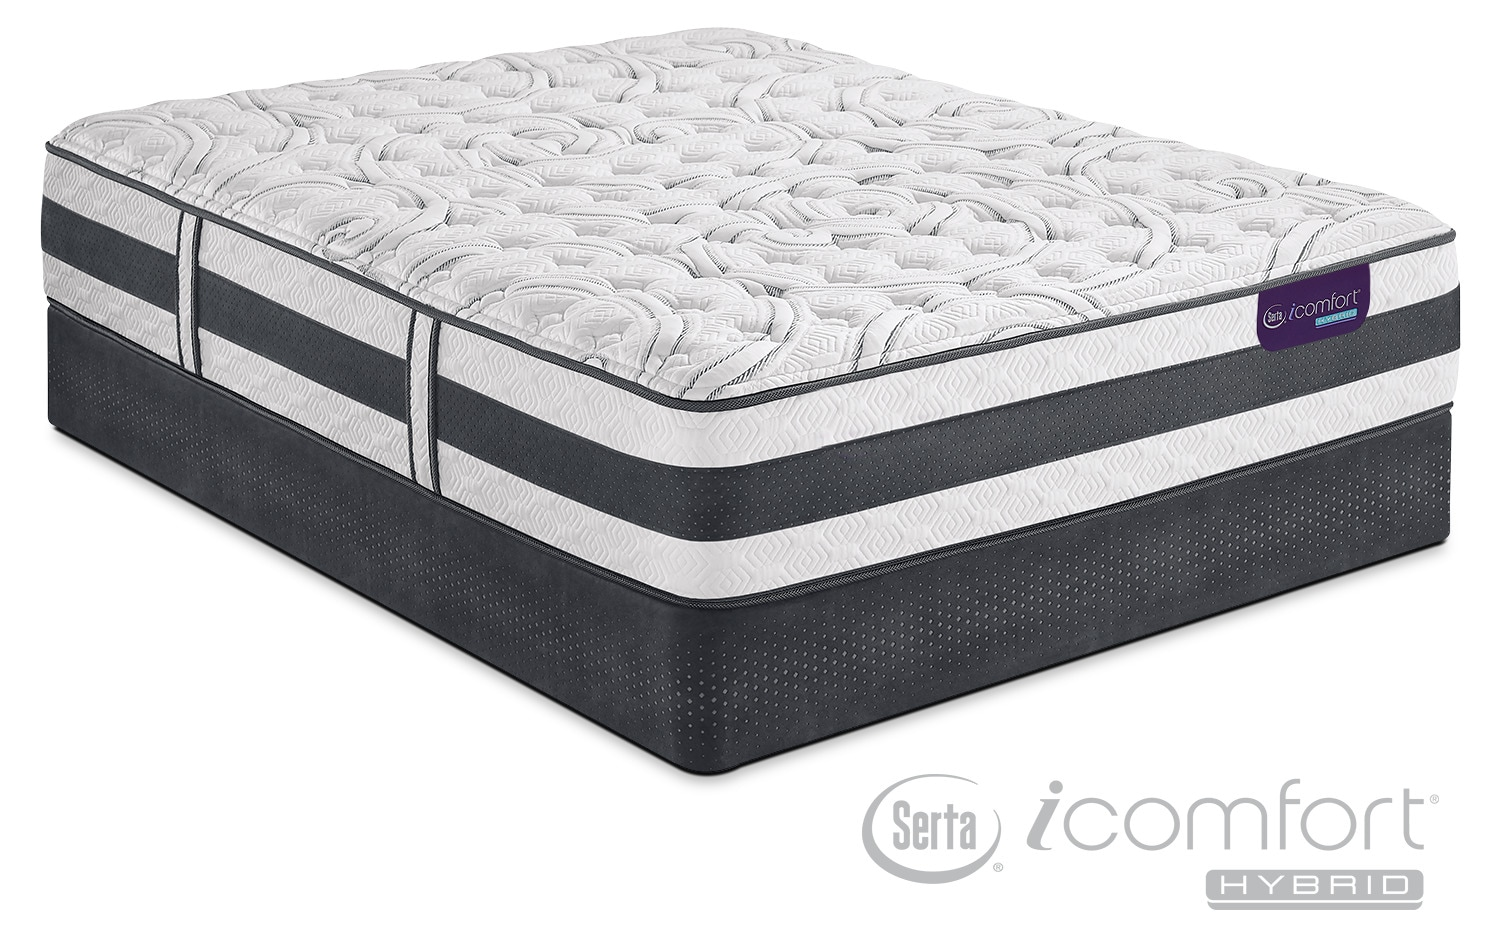 Mattresses and Bedding - Applause II Firm Twin Mattress and Foundation Set